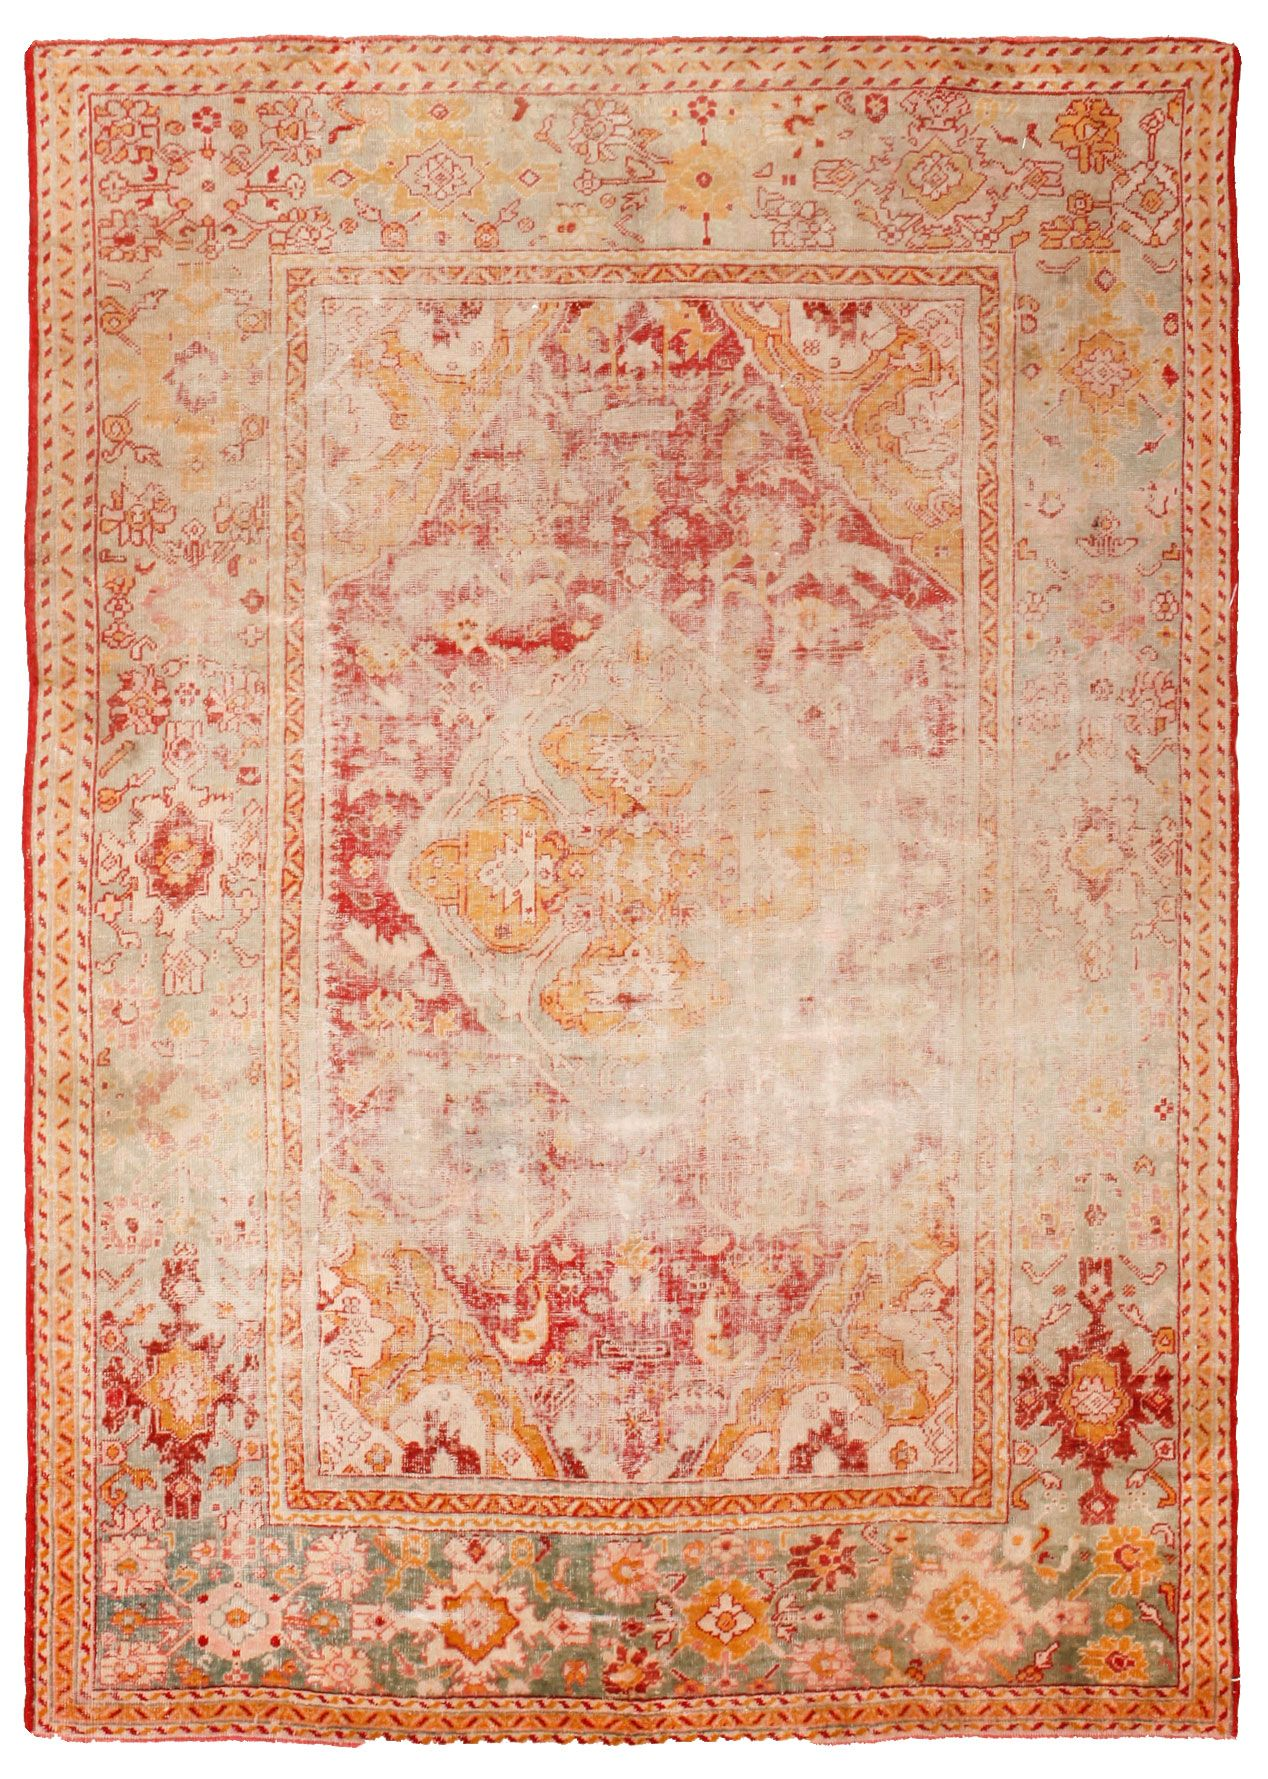 Antique Oushak Rugs Turkish 9 4 2 84 M X 13